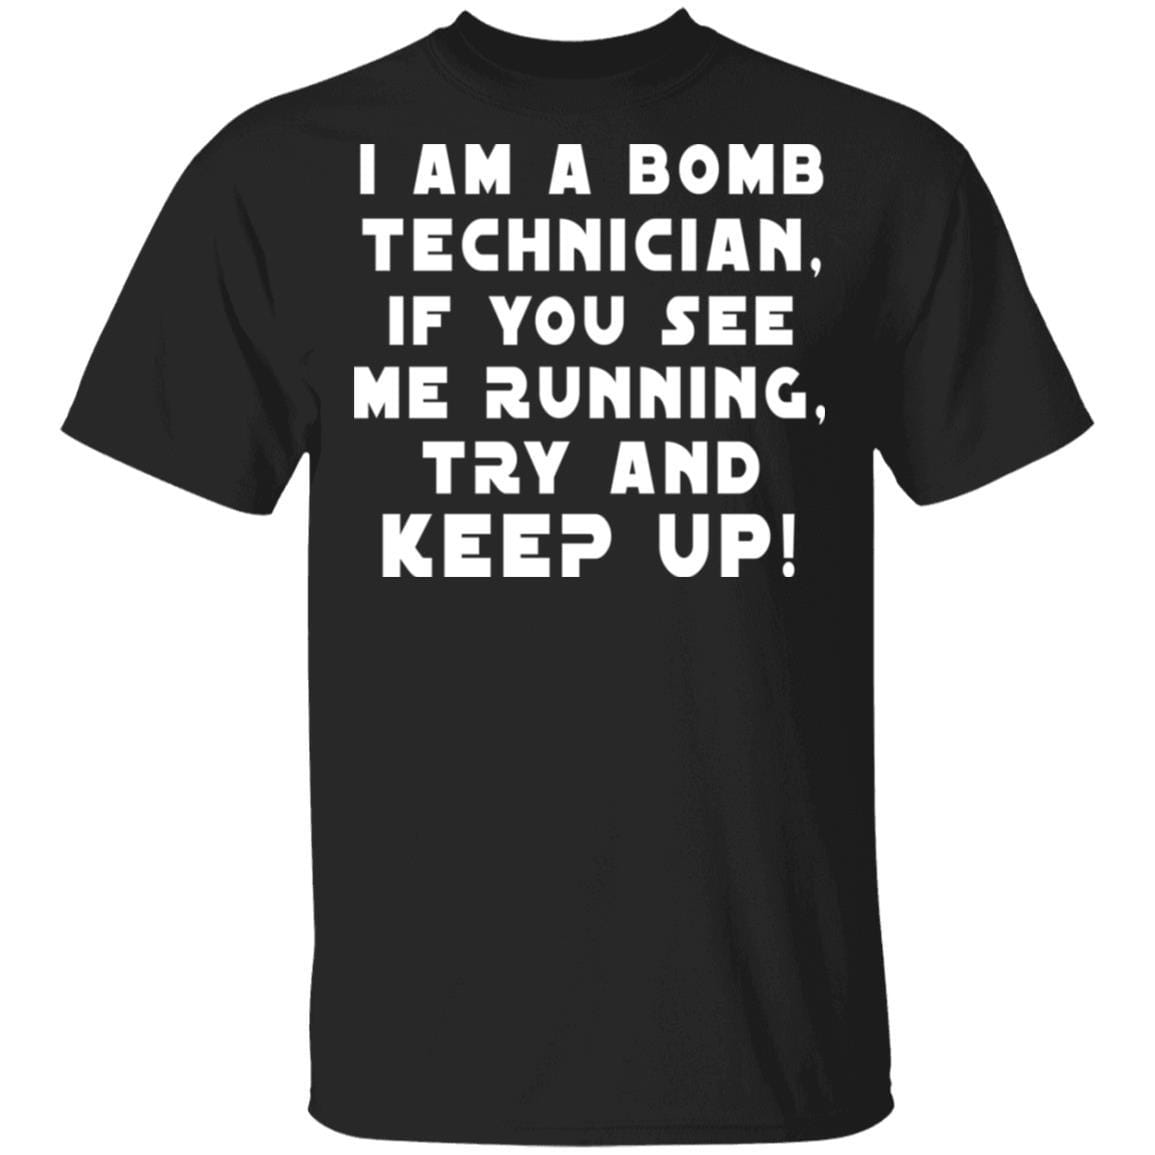 I Am A Bomb Technician If You See Me Running Try And Keep Up T-Shirts, Hoodies 1049-9953-87589169-48144 - Tee Ript